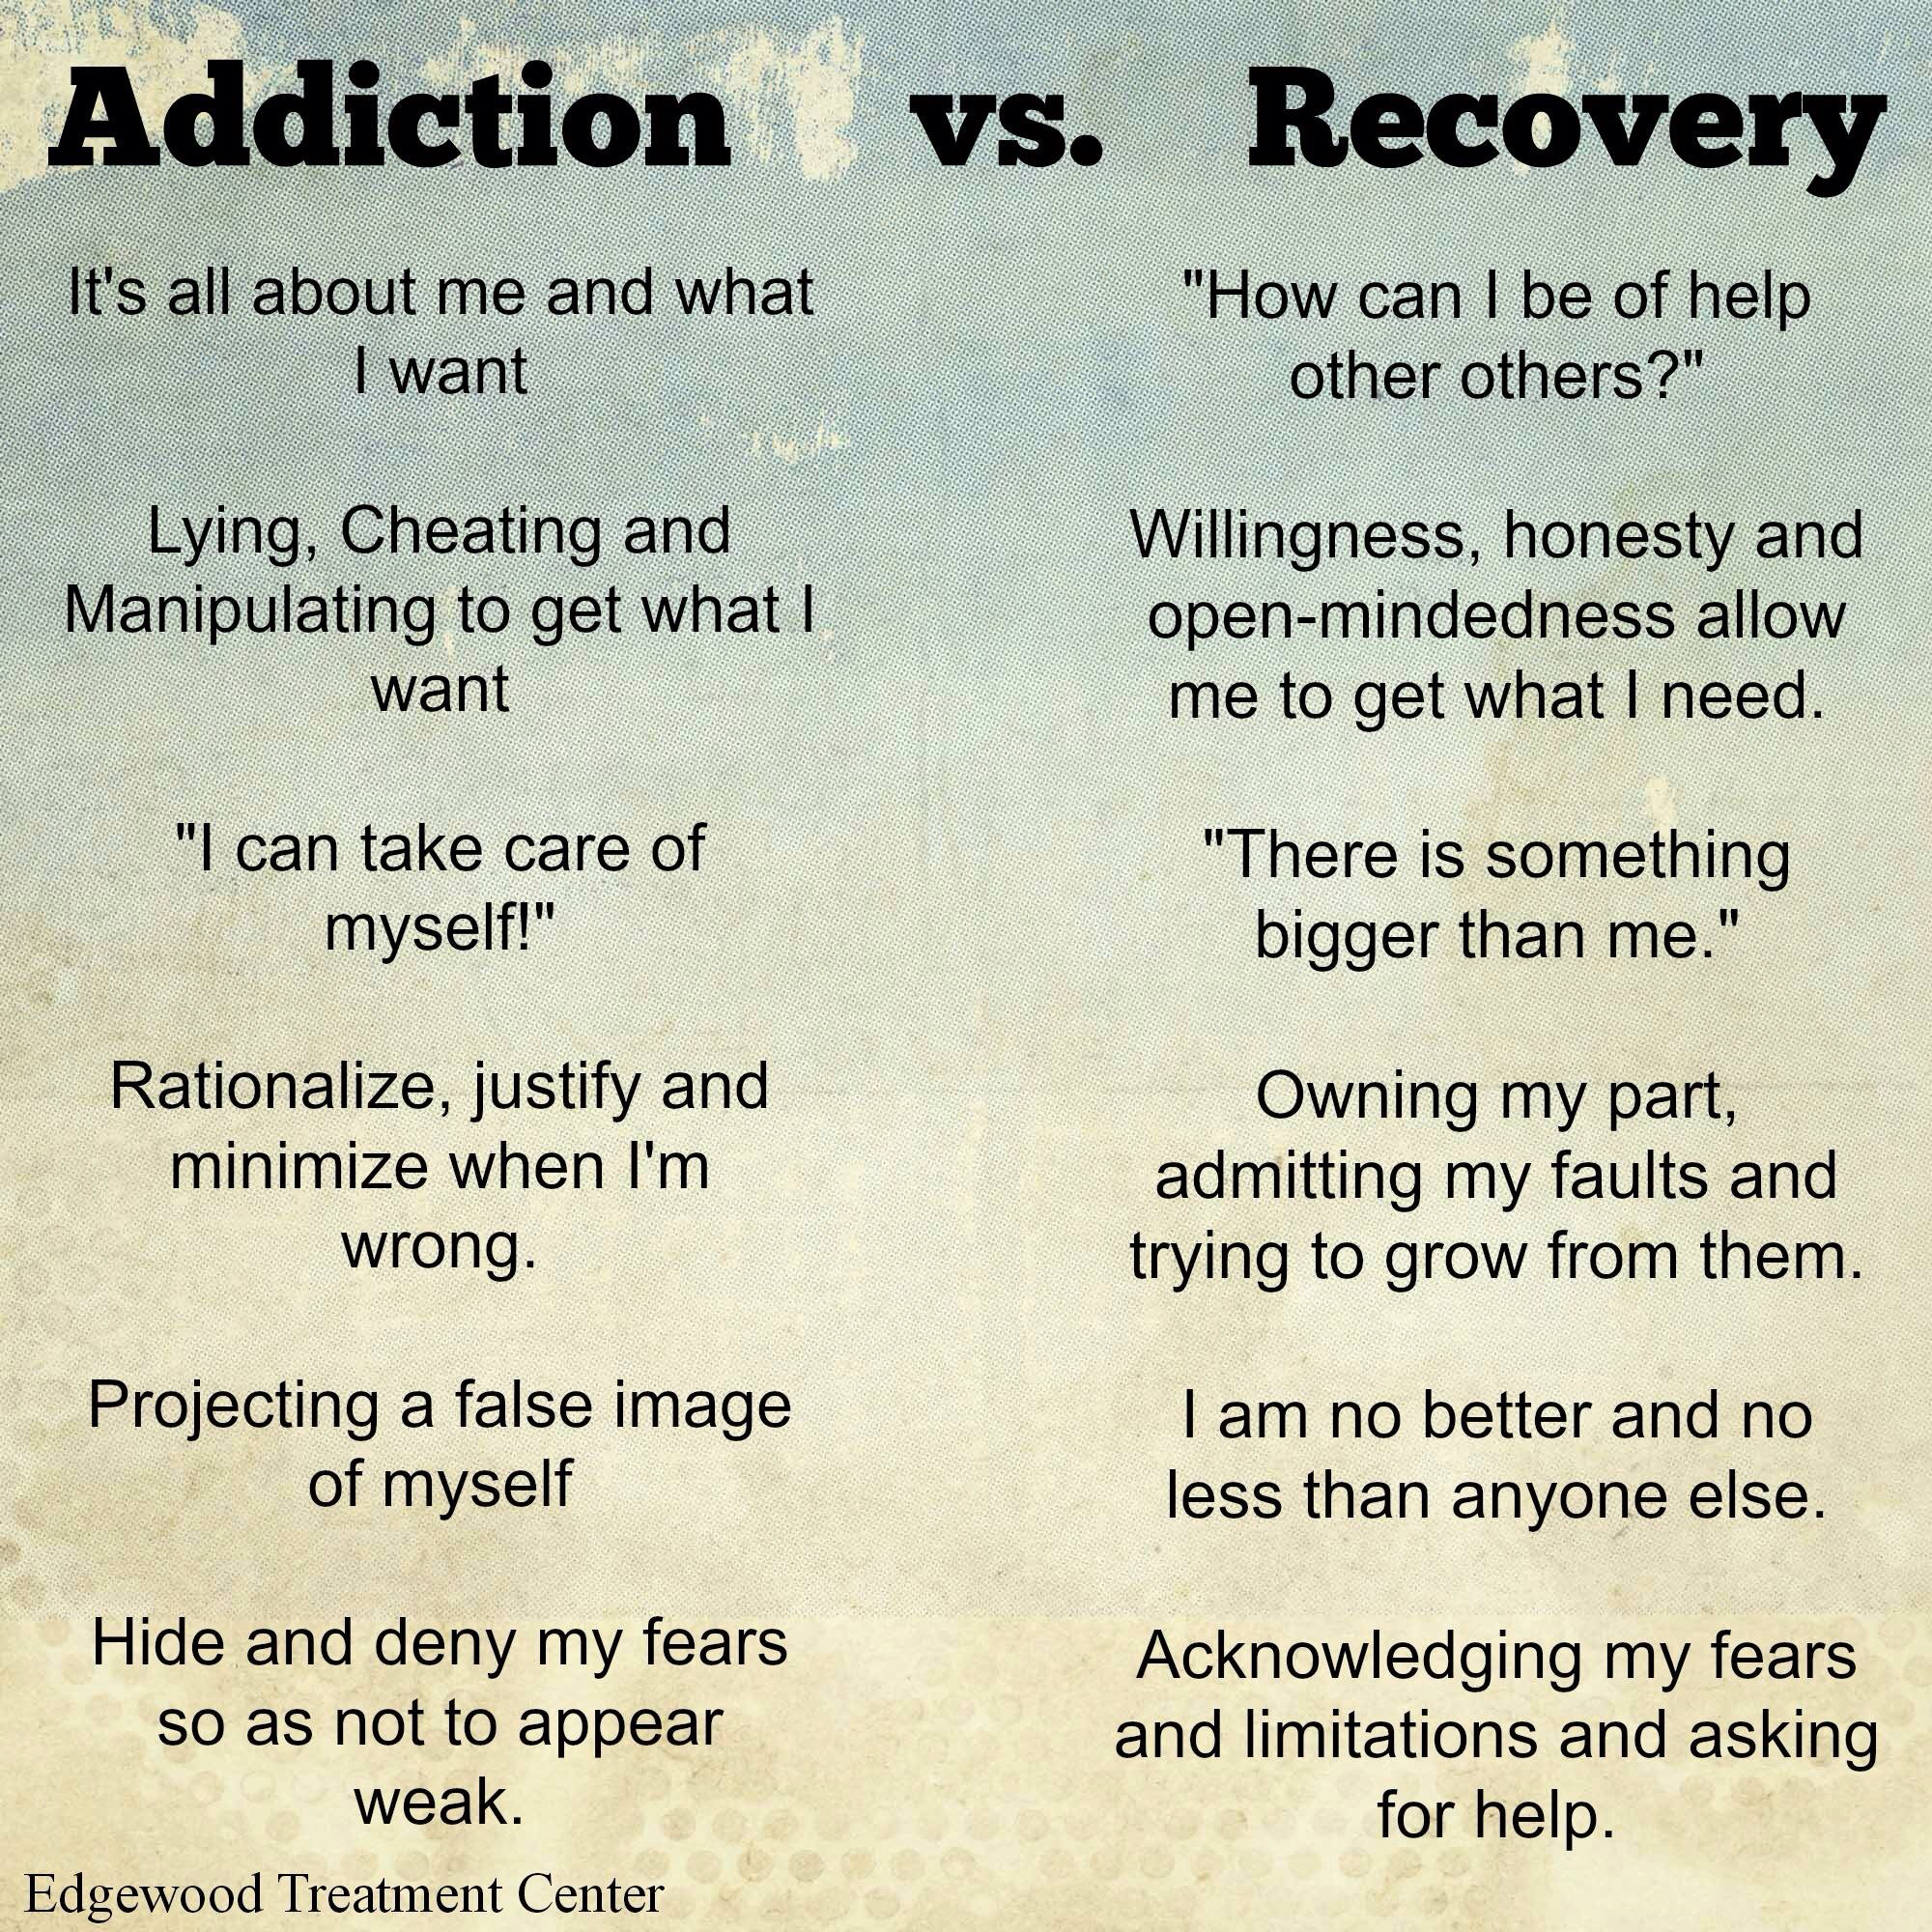 Quotes About Drug Addiction: Drug Addiction Quotes And Sayings. QuotesGram